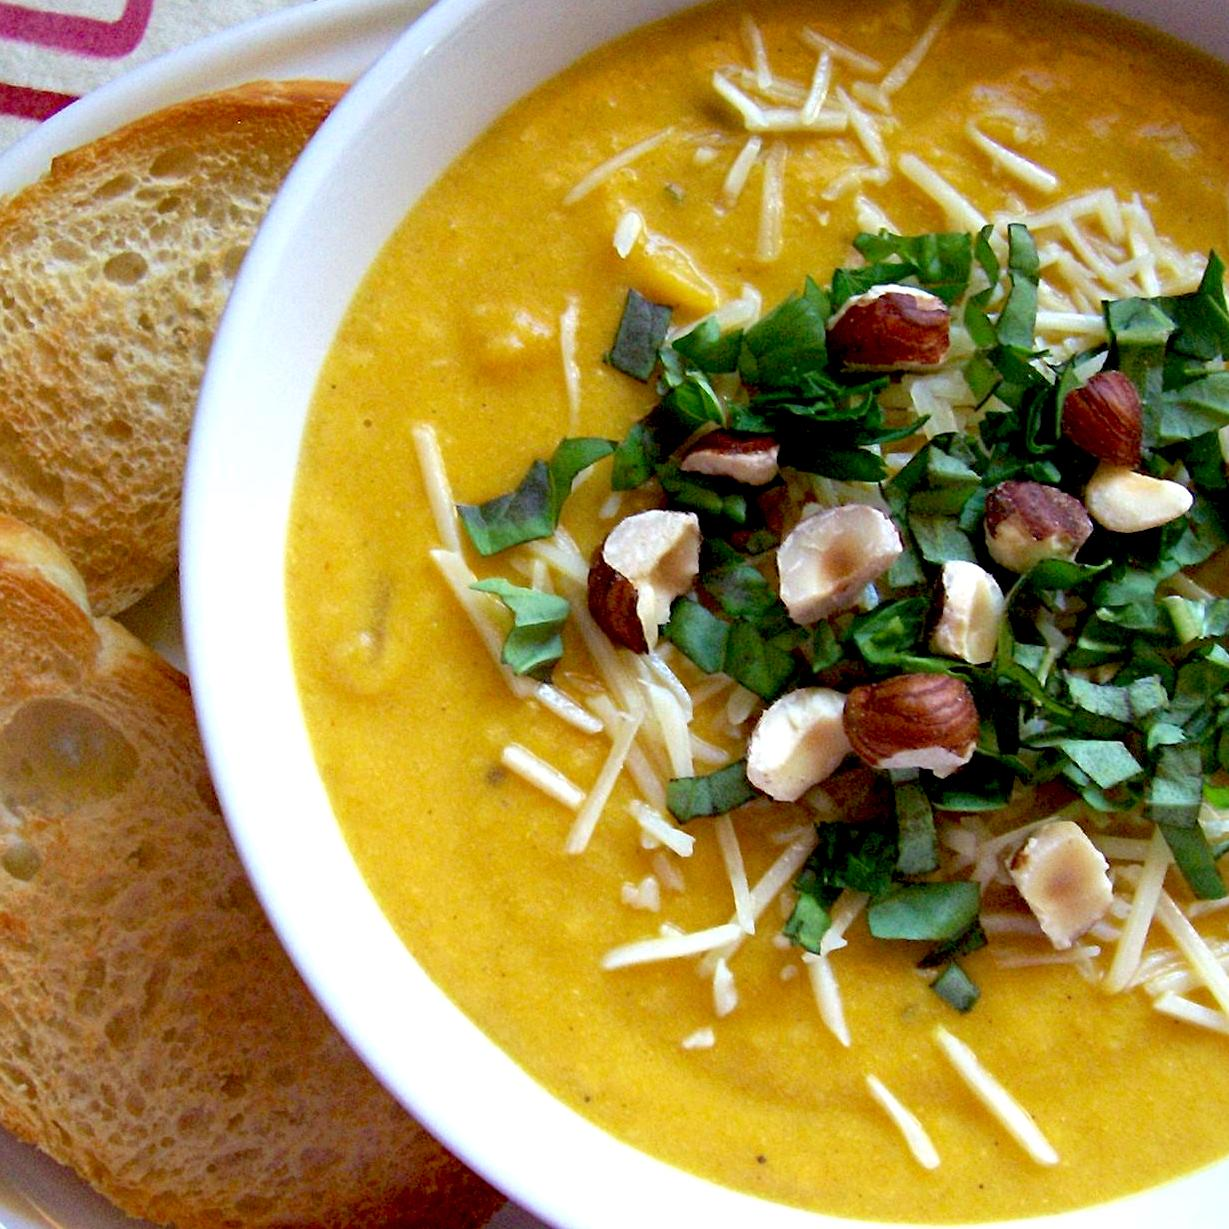 butternut squash soup in a while bowl with hazelnuts and cheese on top